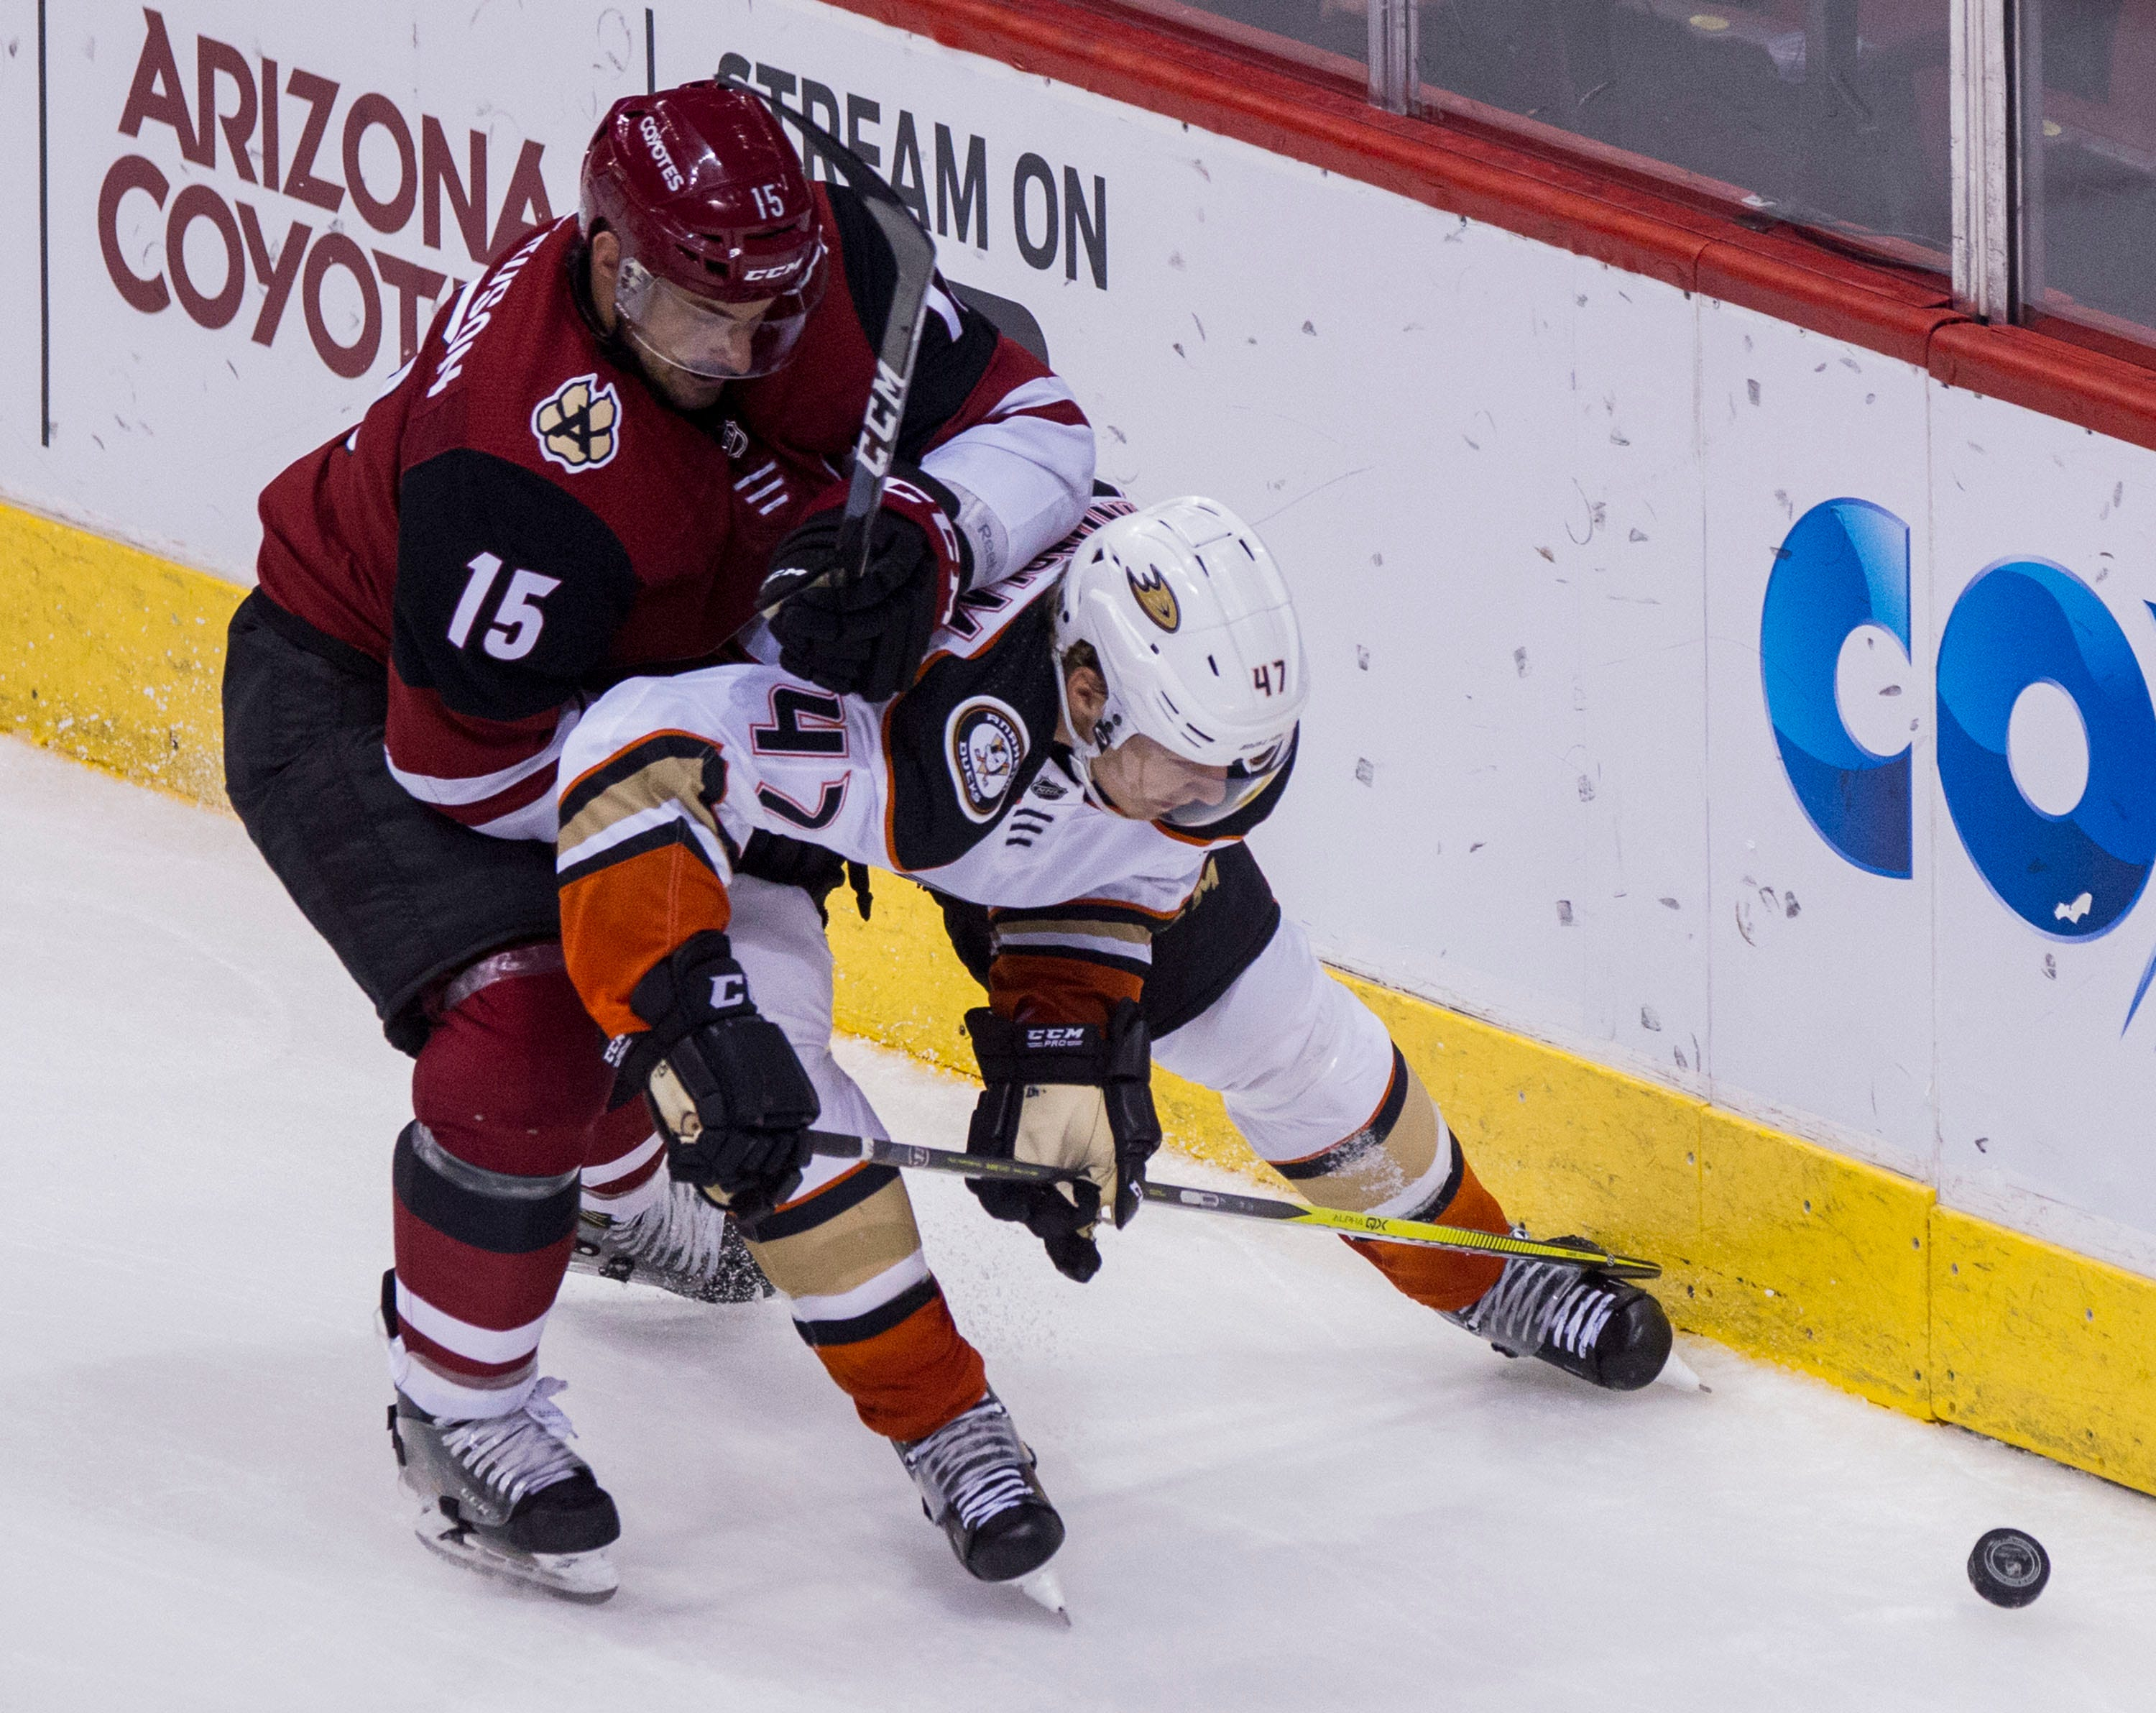 Arizona Coyotes looking to build upon strong second half